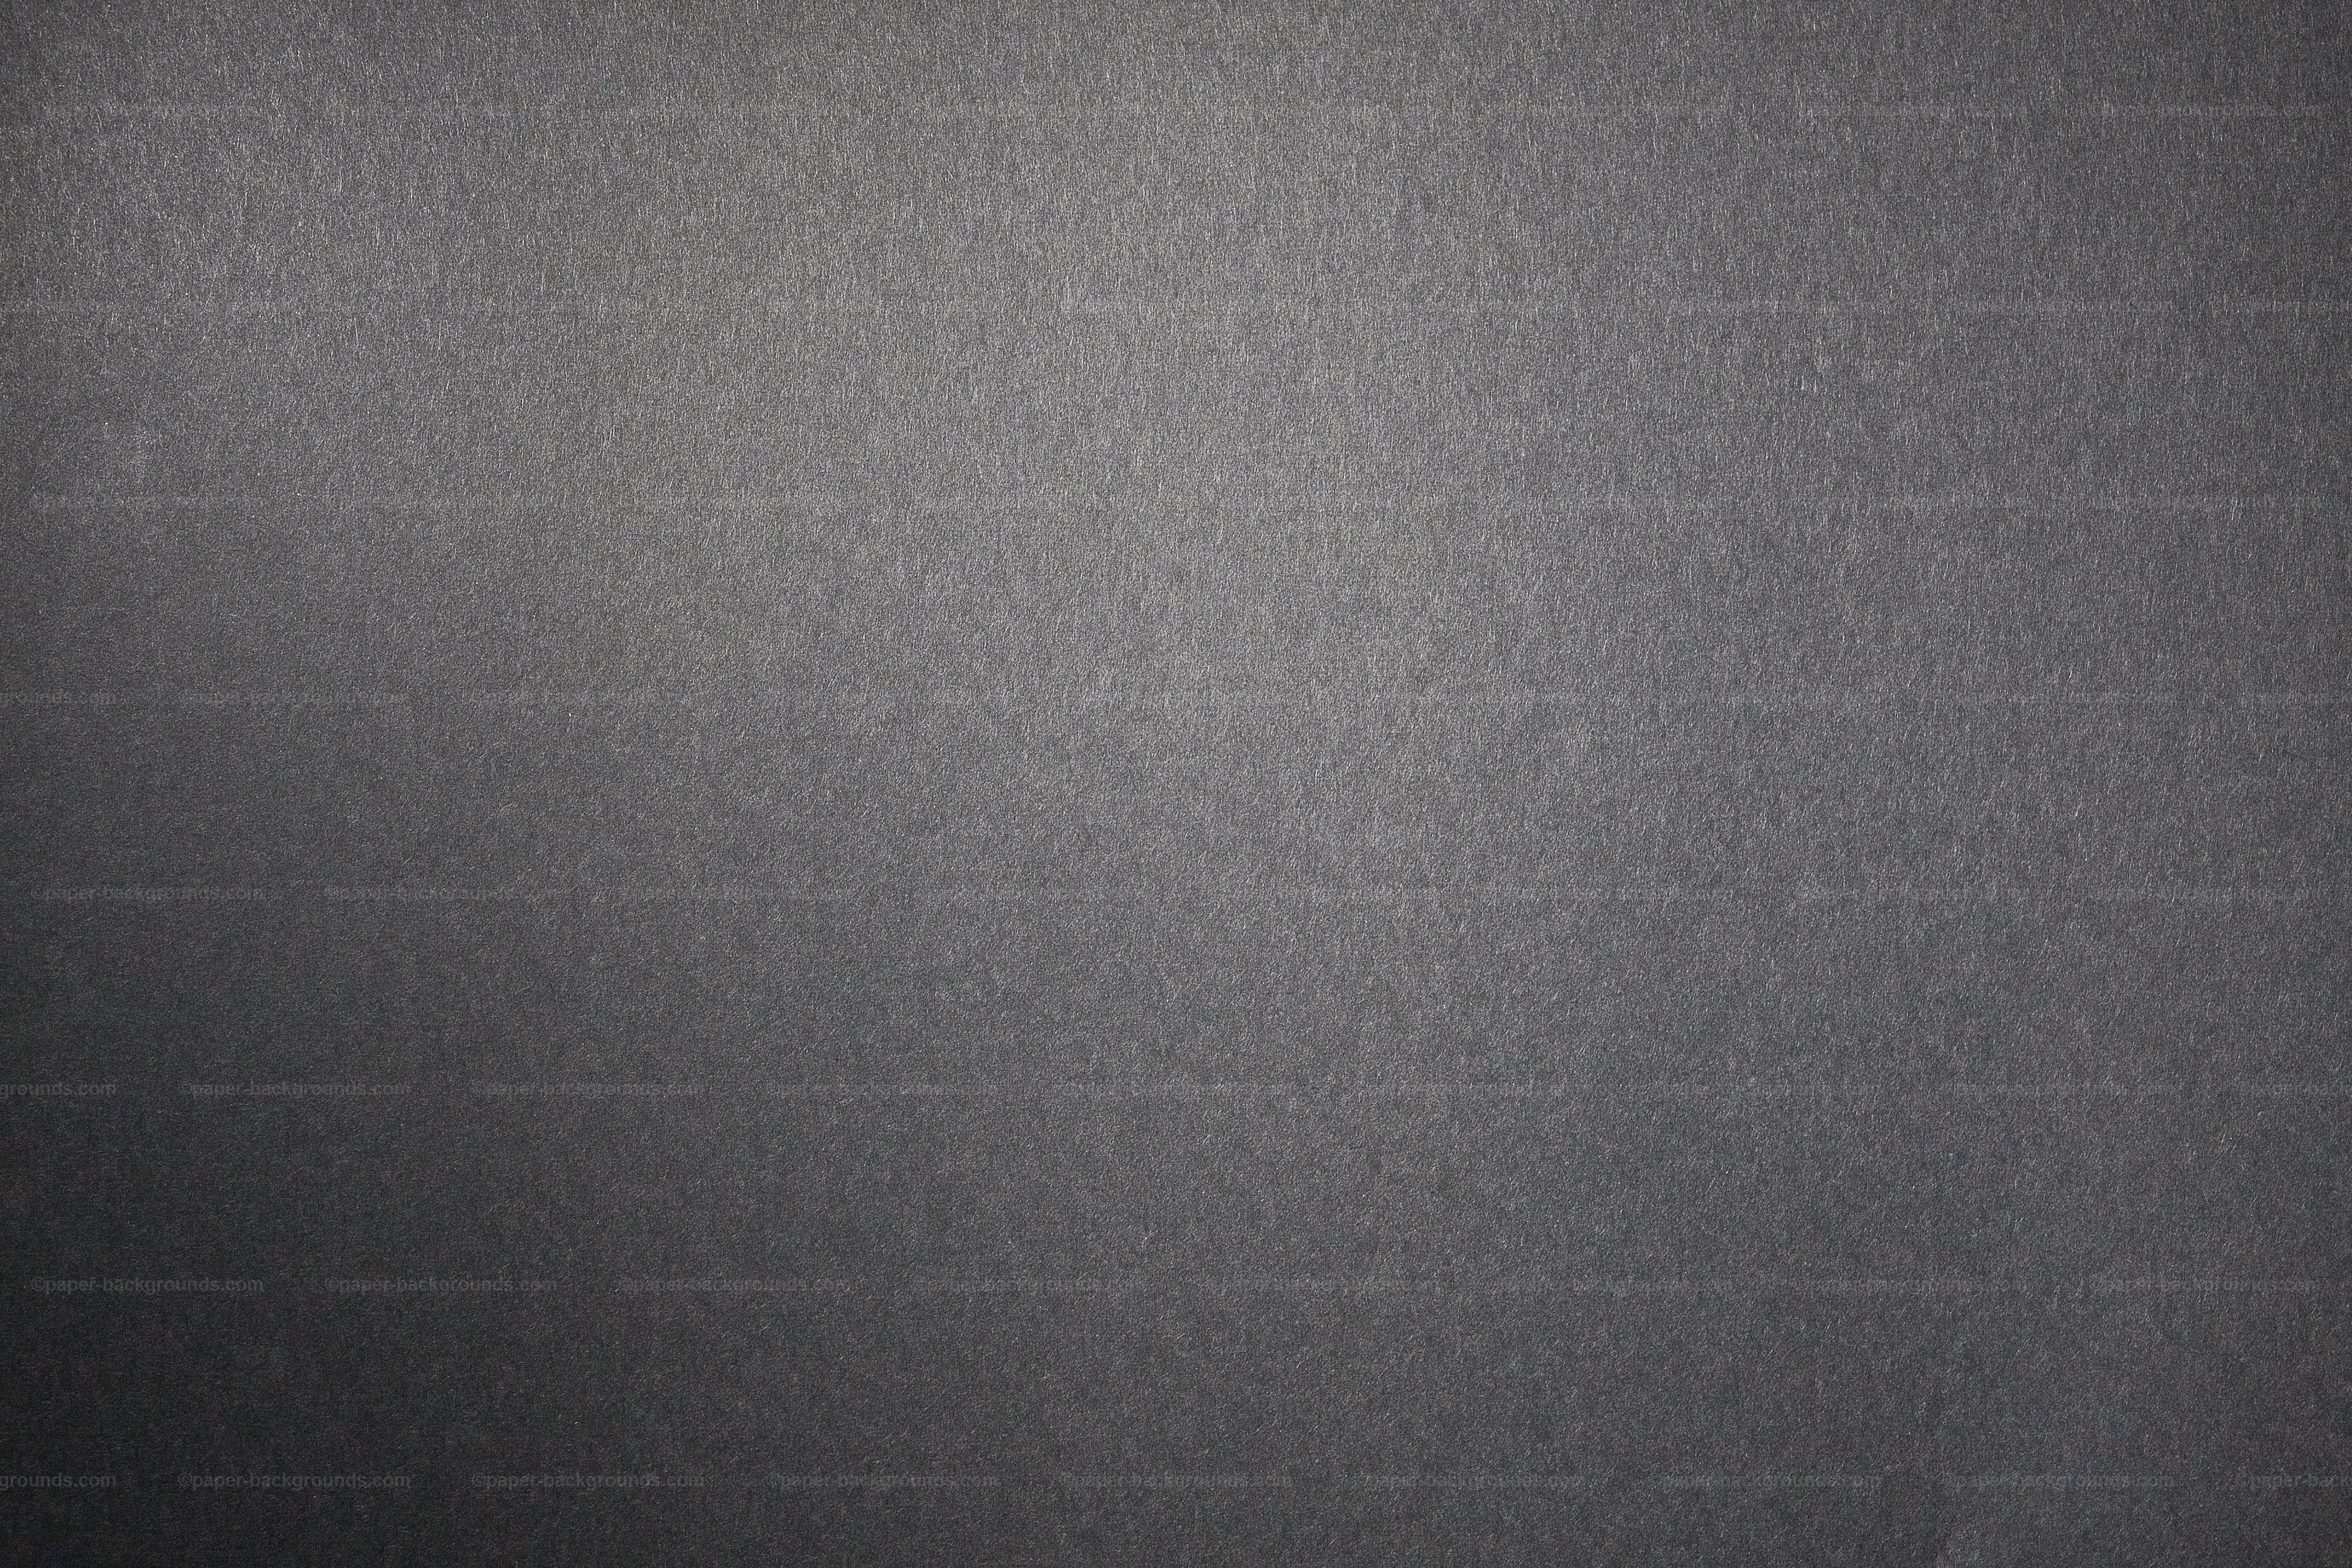 free photo  black paper texture - papers  subtle  surface - free download